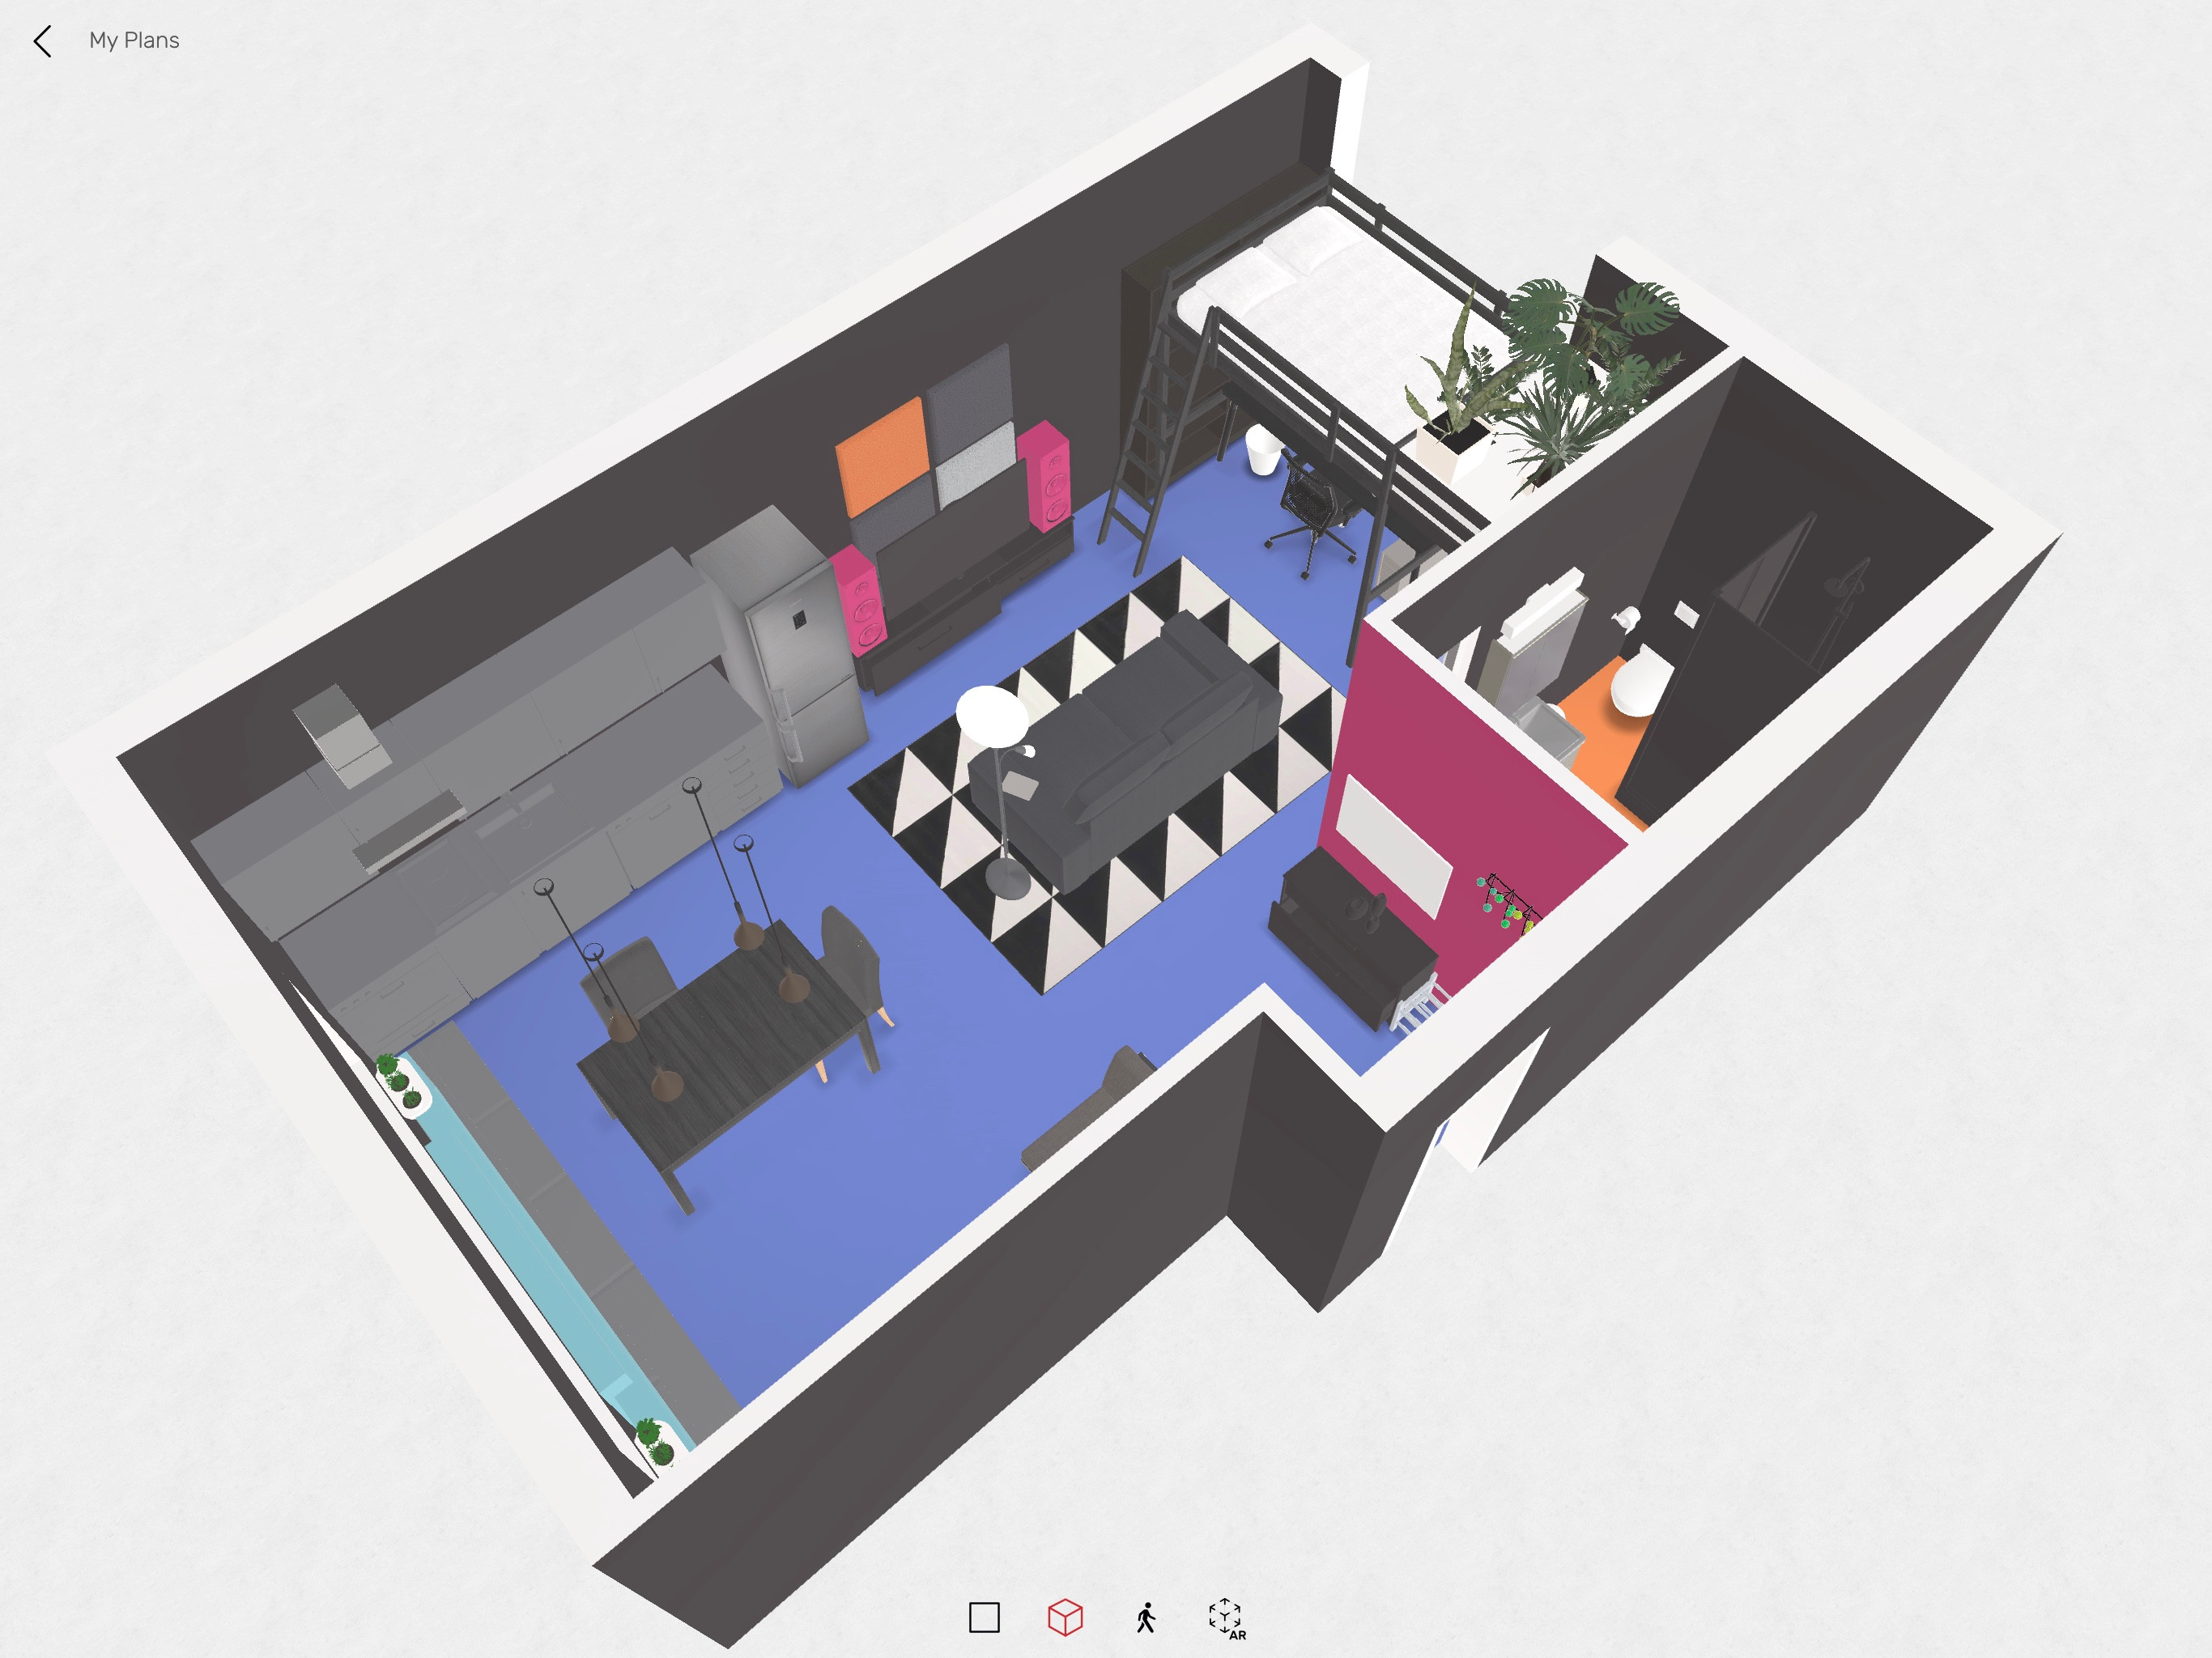 3D model of the apartment, created with Roomle